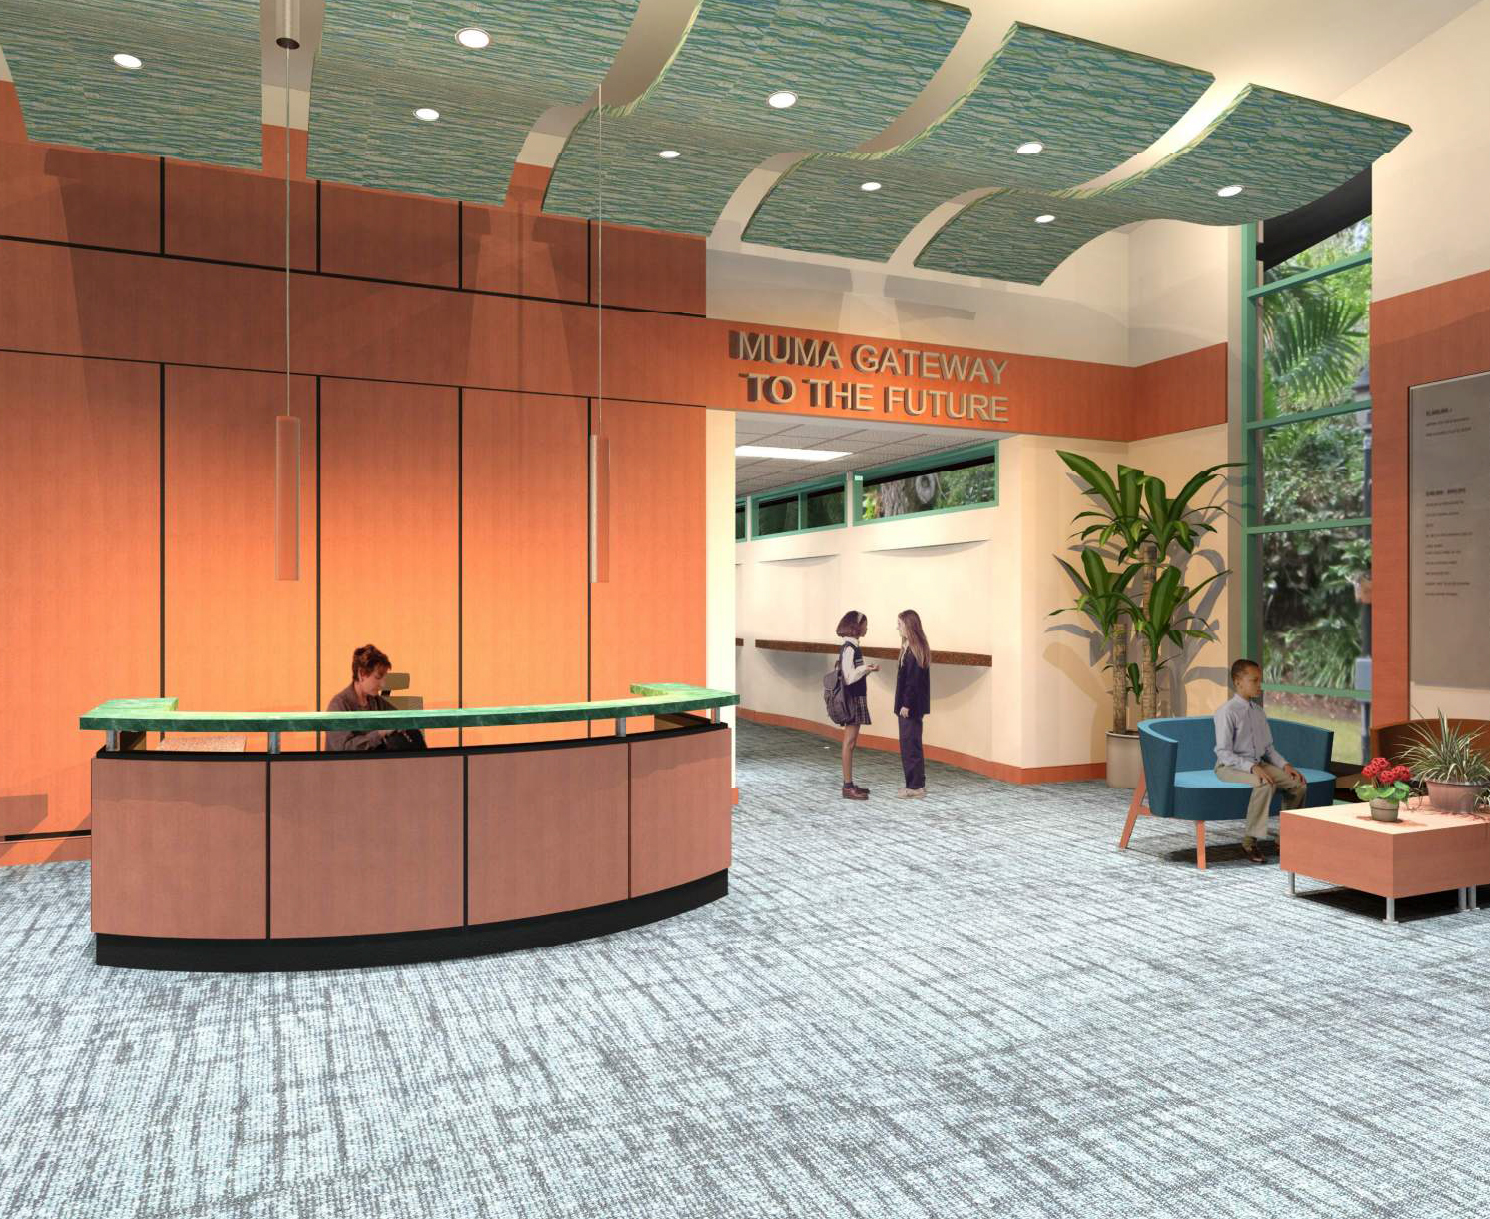 A rendering of the reception area of the new Junior Achievement facility.